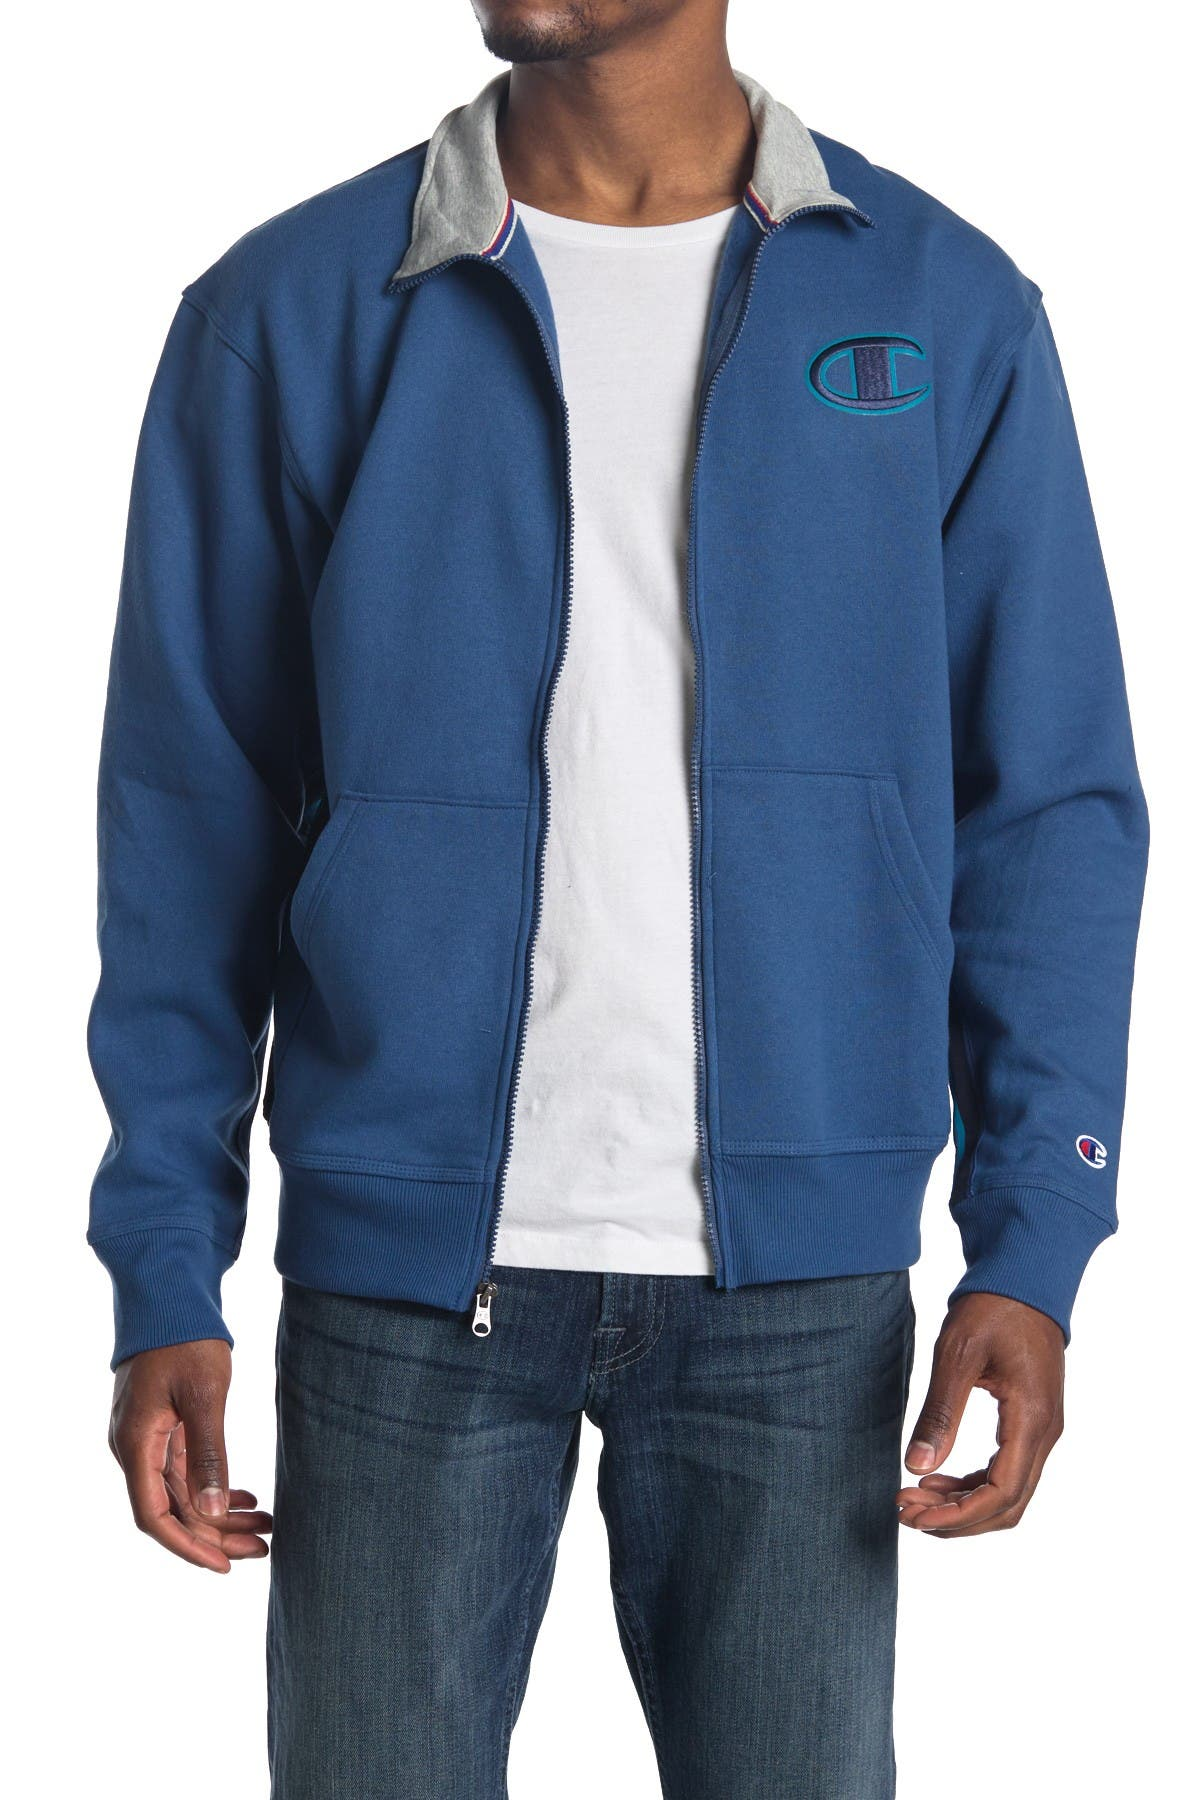 Image of Champion Powerblend Funnel Neck Jacket